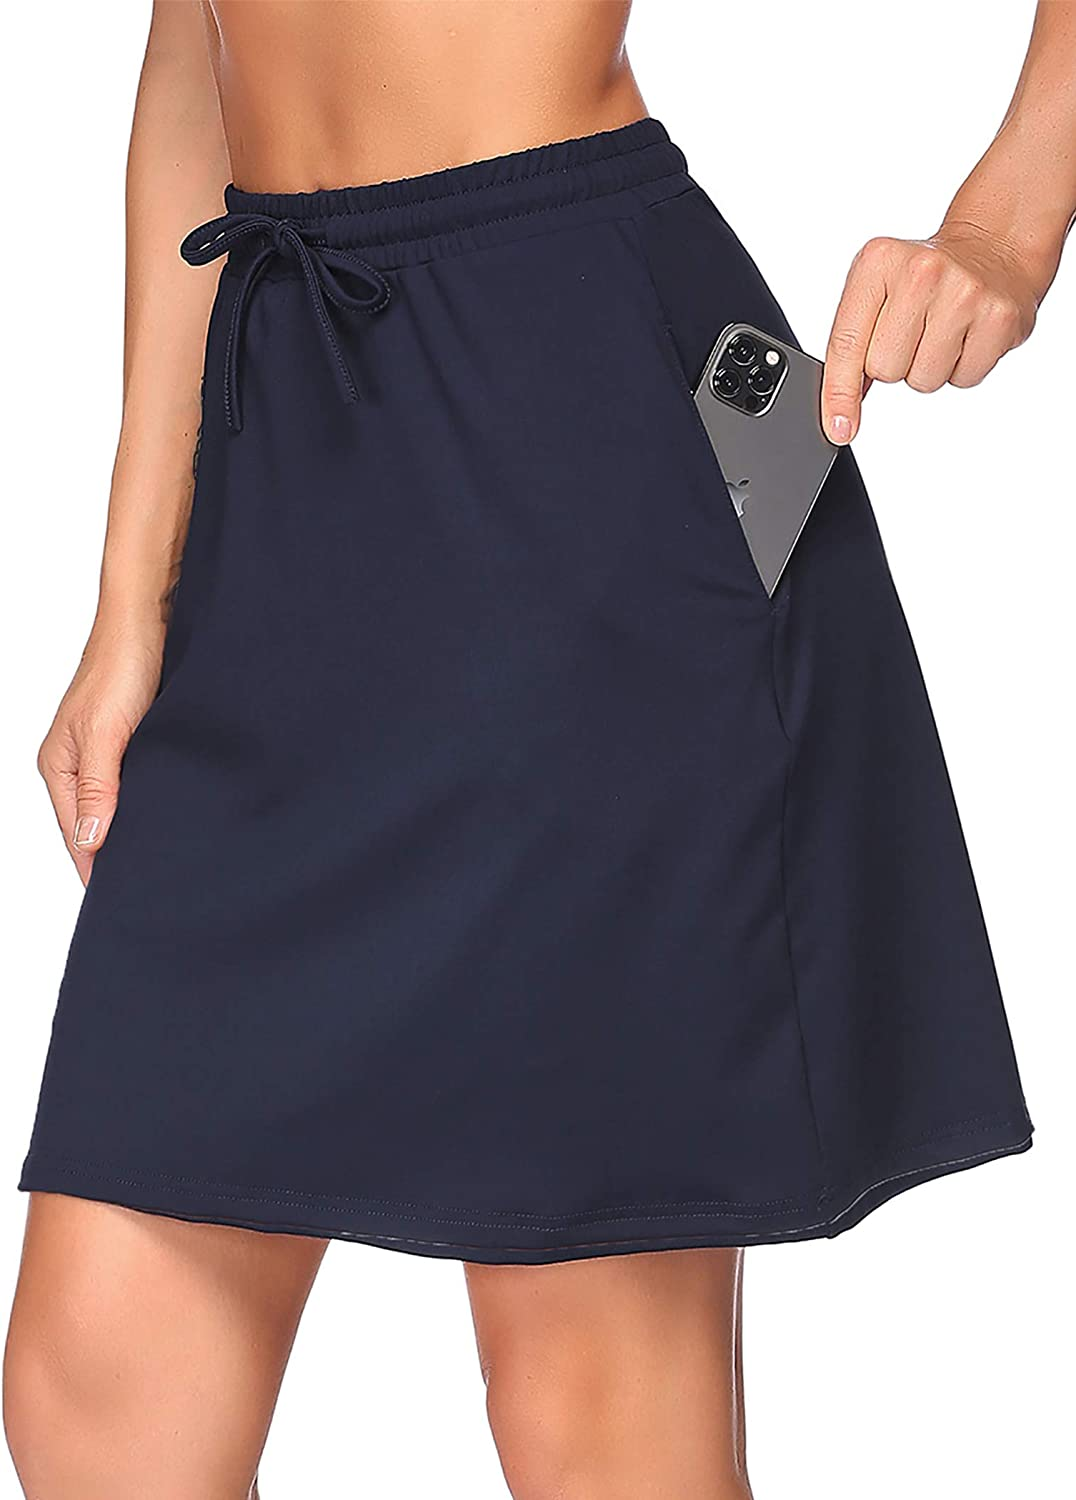 COOrun Athletic Skorts Skirts for Knee Ten Women Length New item Max 77% OFF Stretchy